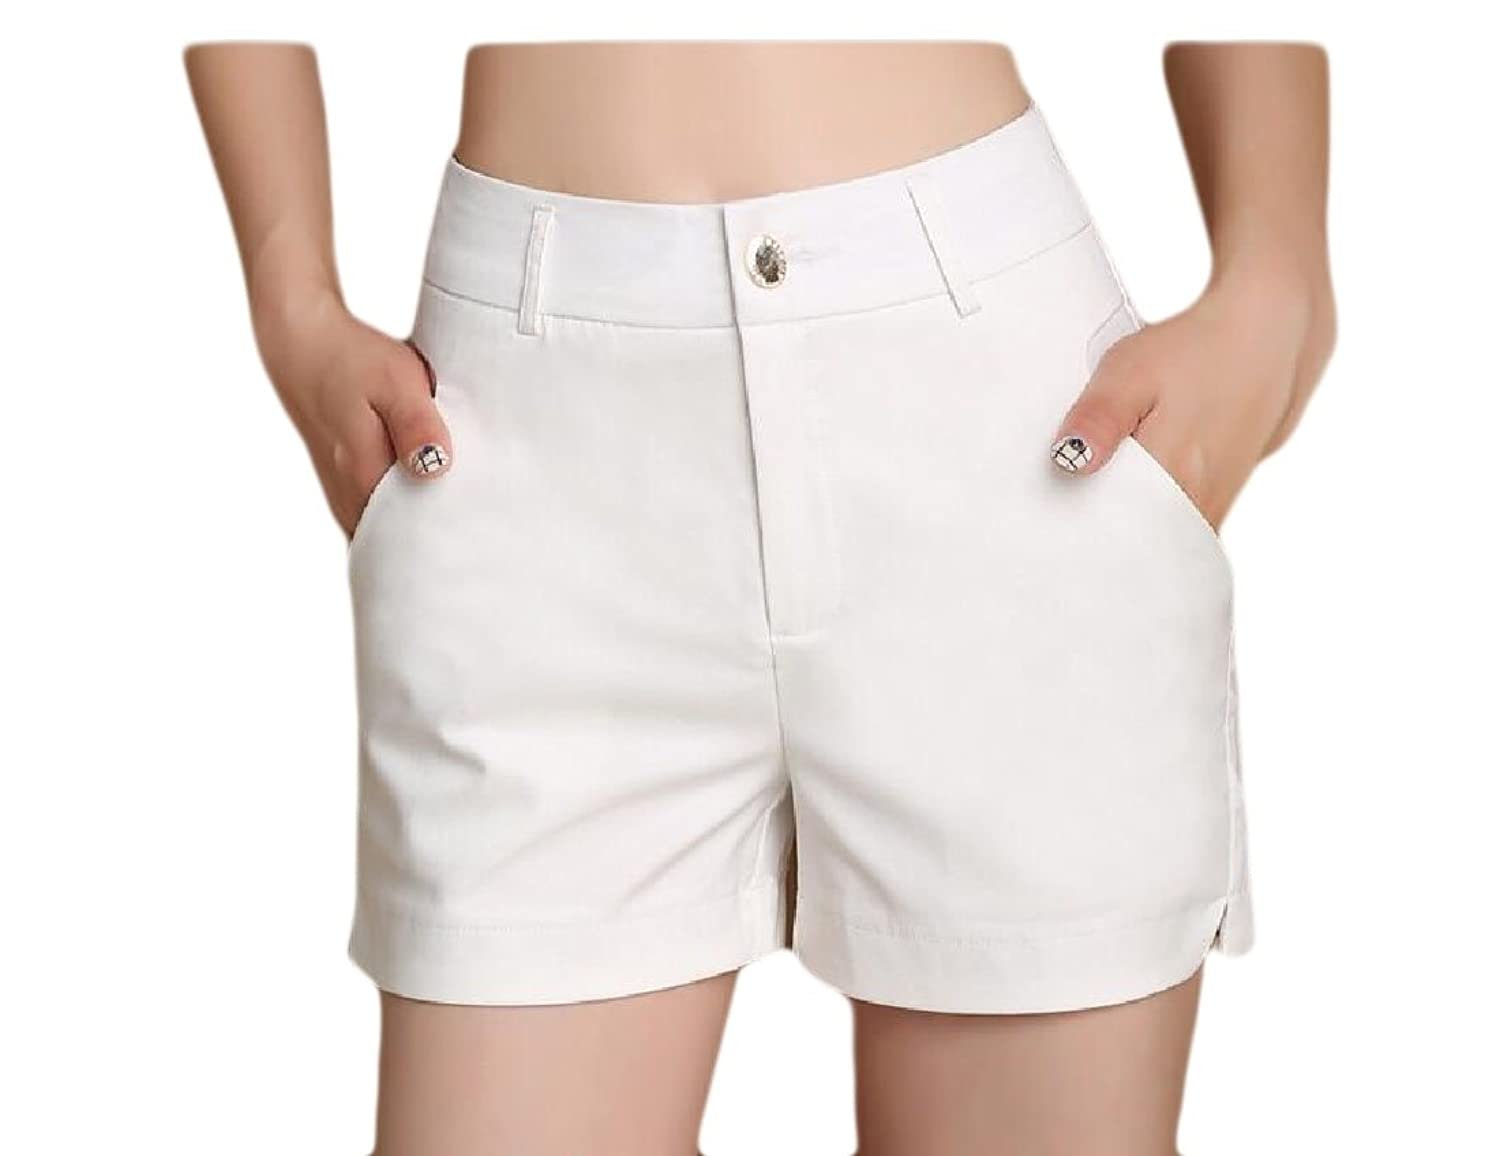 Abetteric Women's Short Hot Pants Summer Casual Outwear Pure Color Boardshorts White S